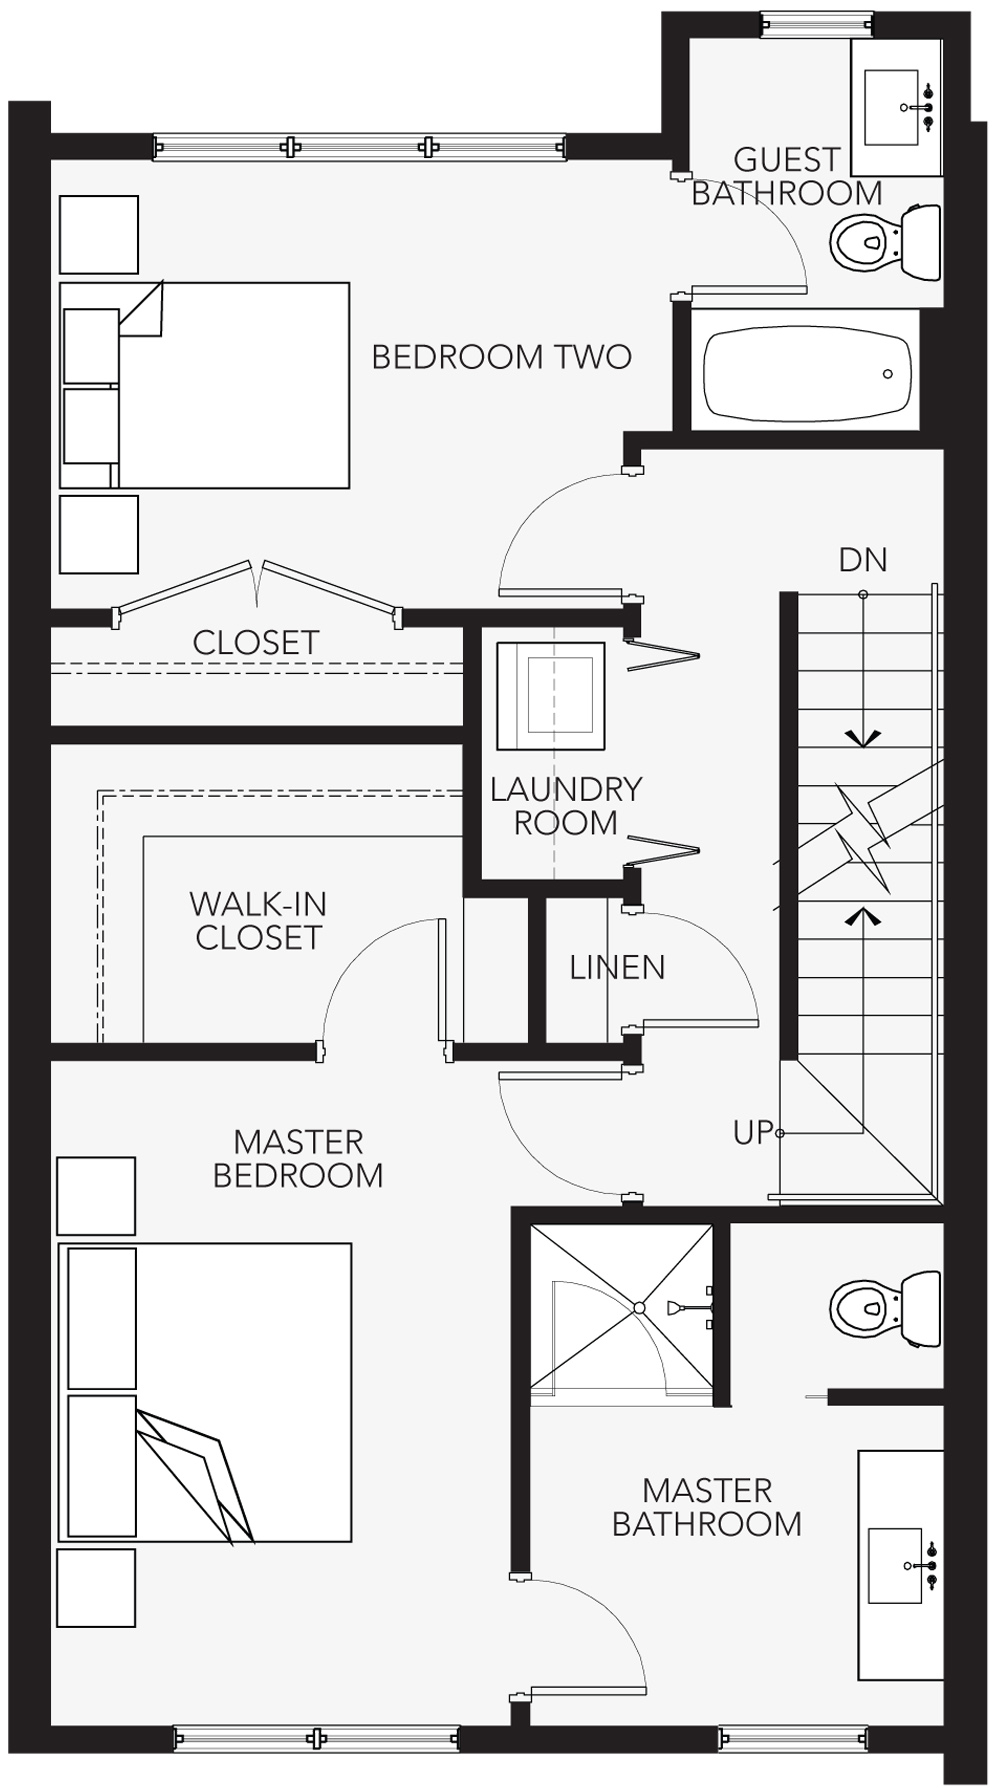 Brickhause 1 floorplan